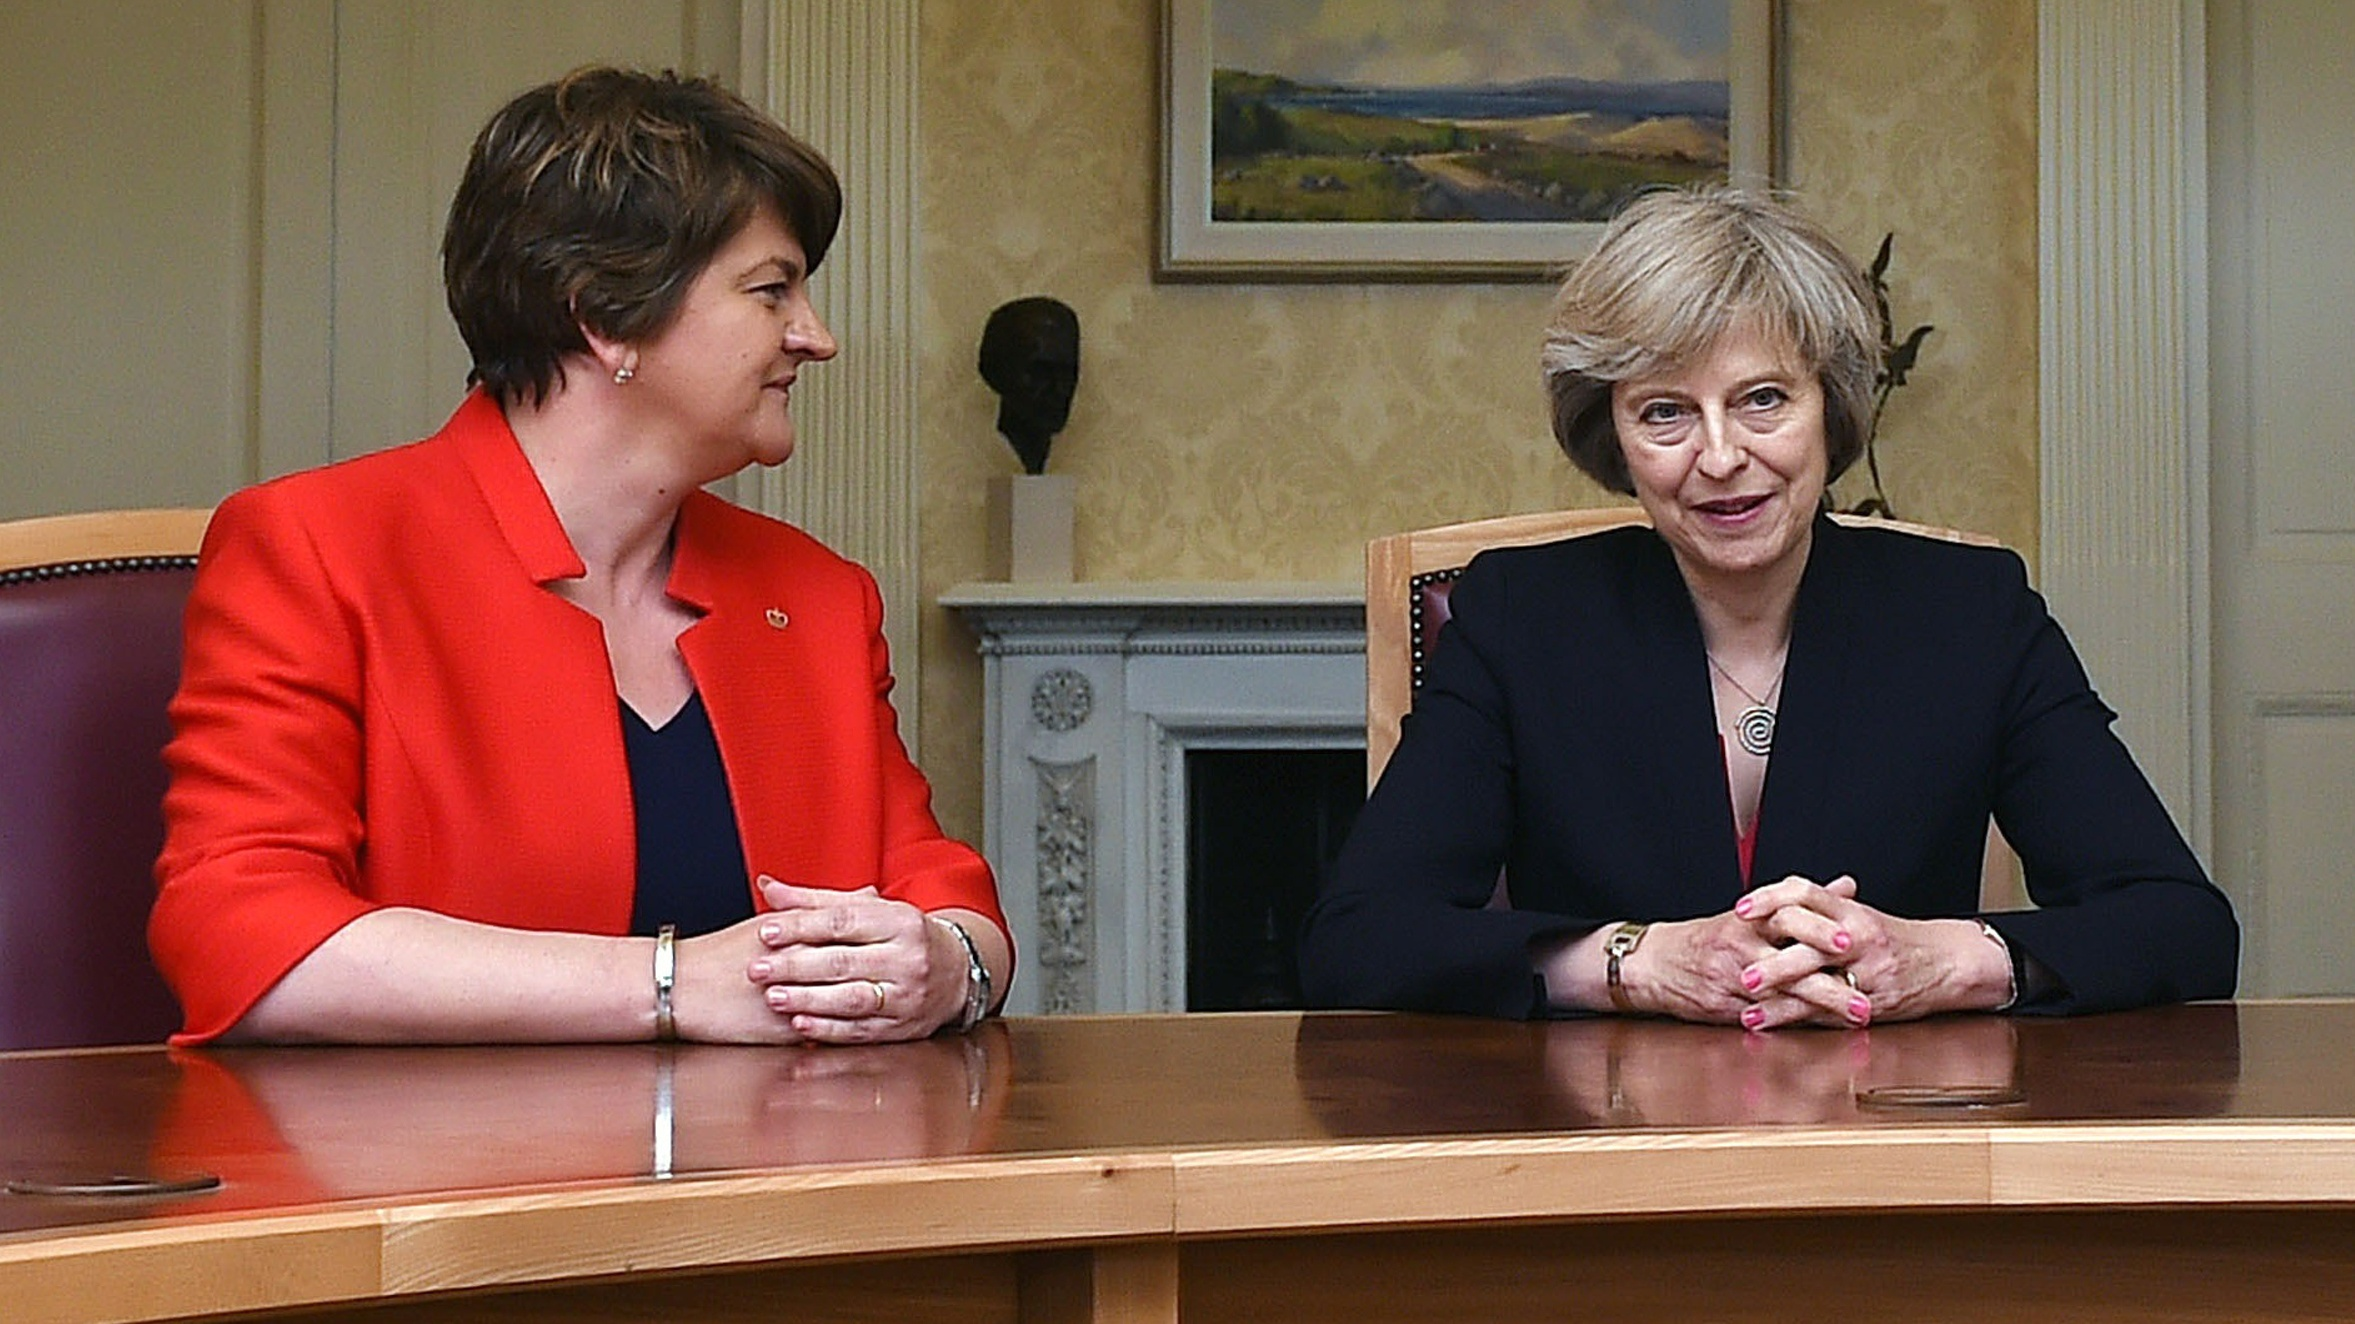 Ireland's first Indian-origin prime minister meets Theresa May